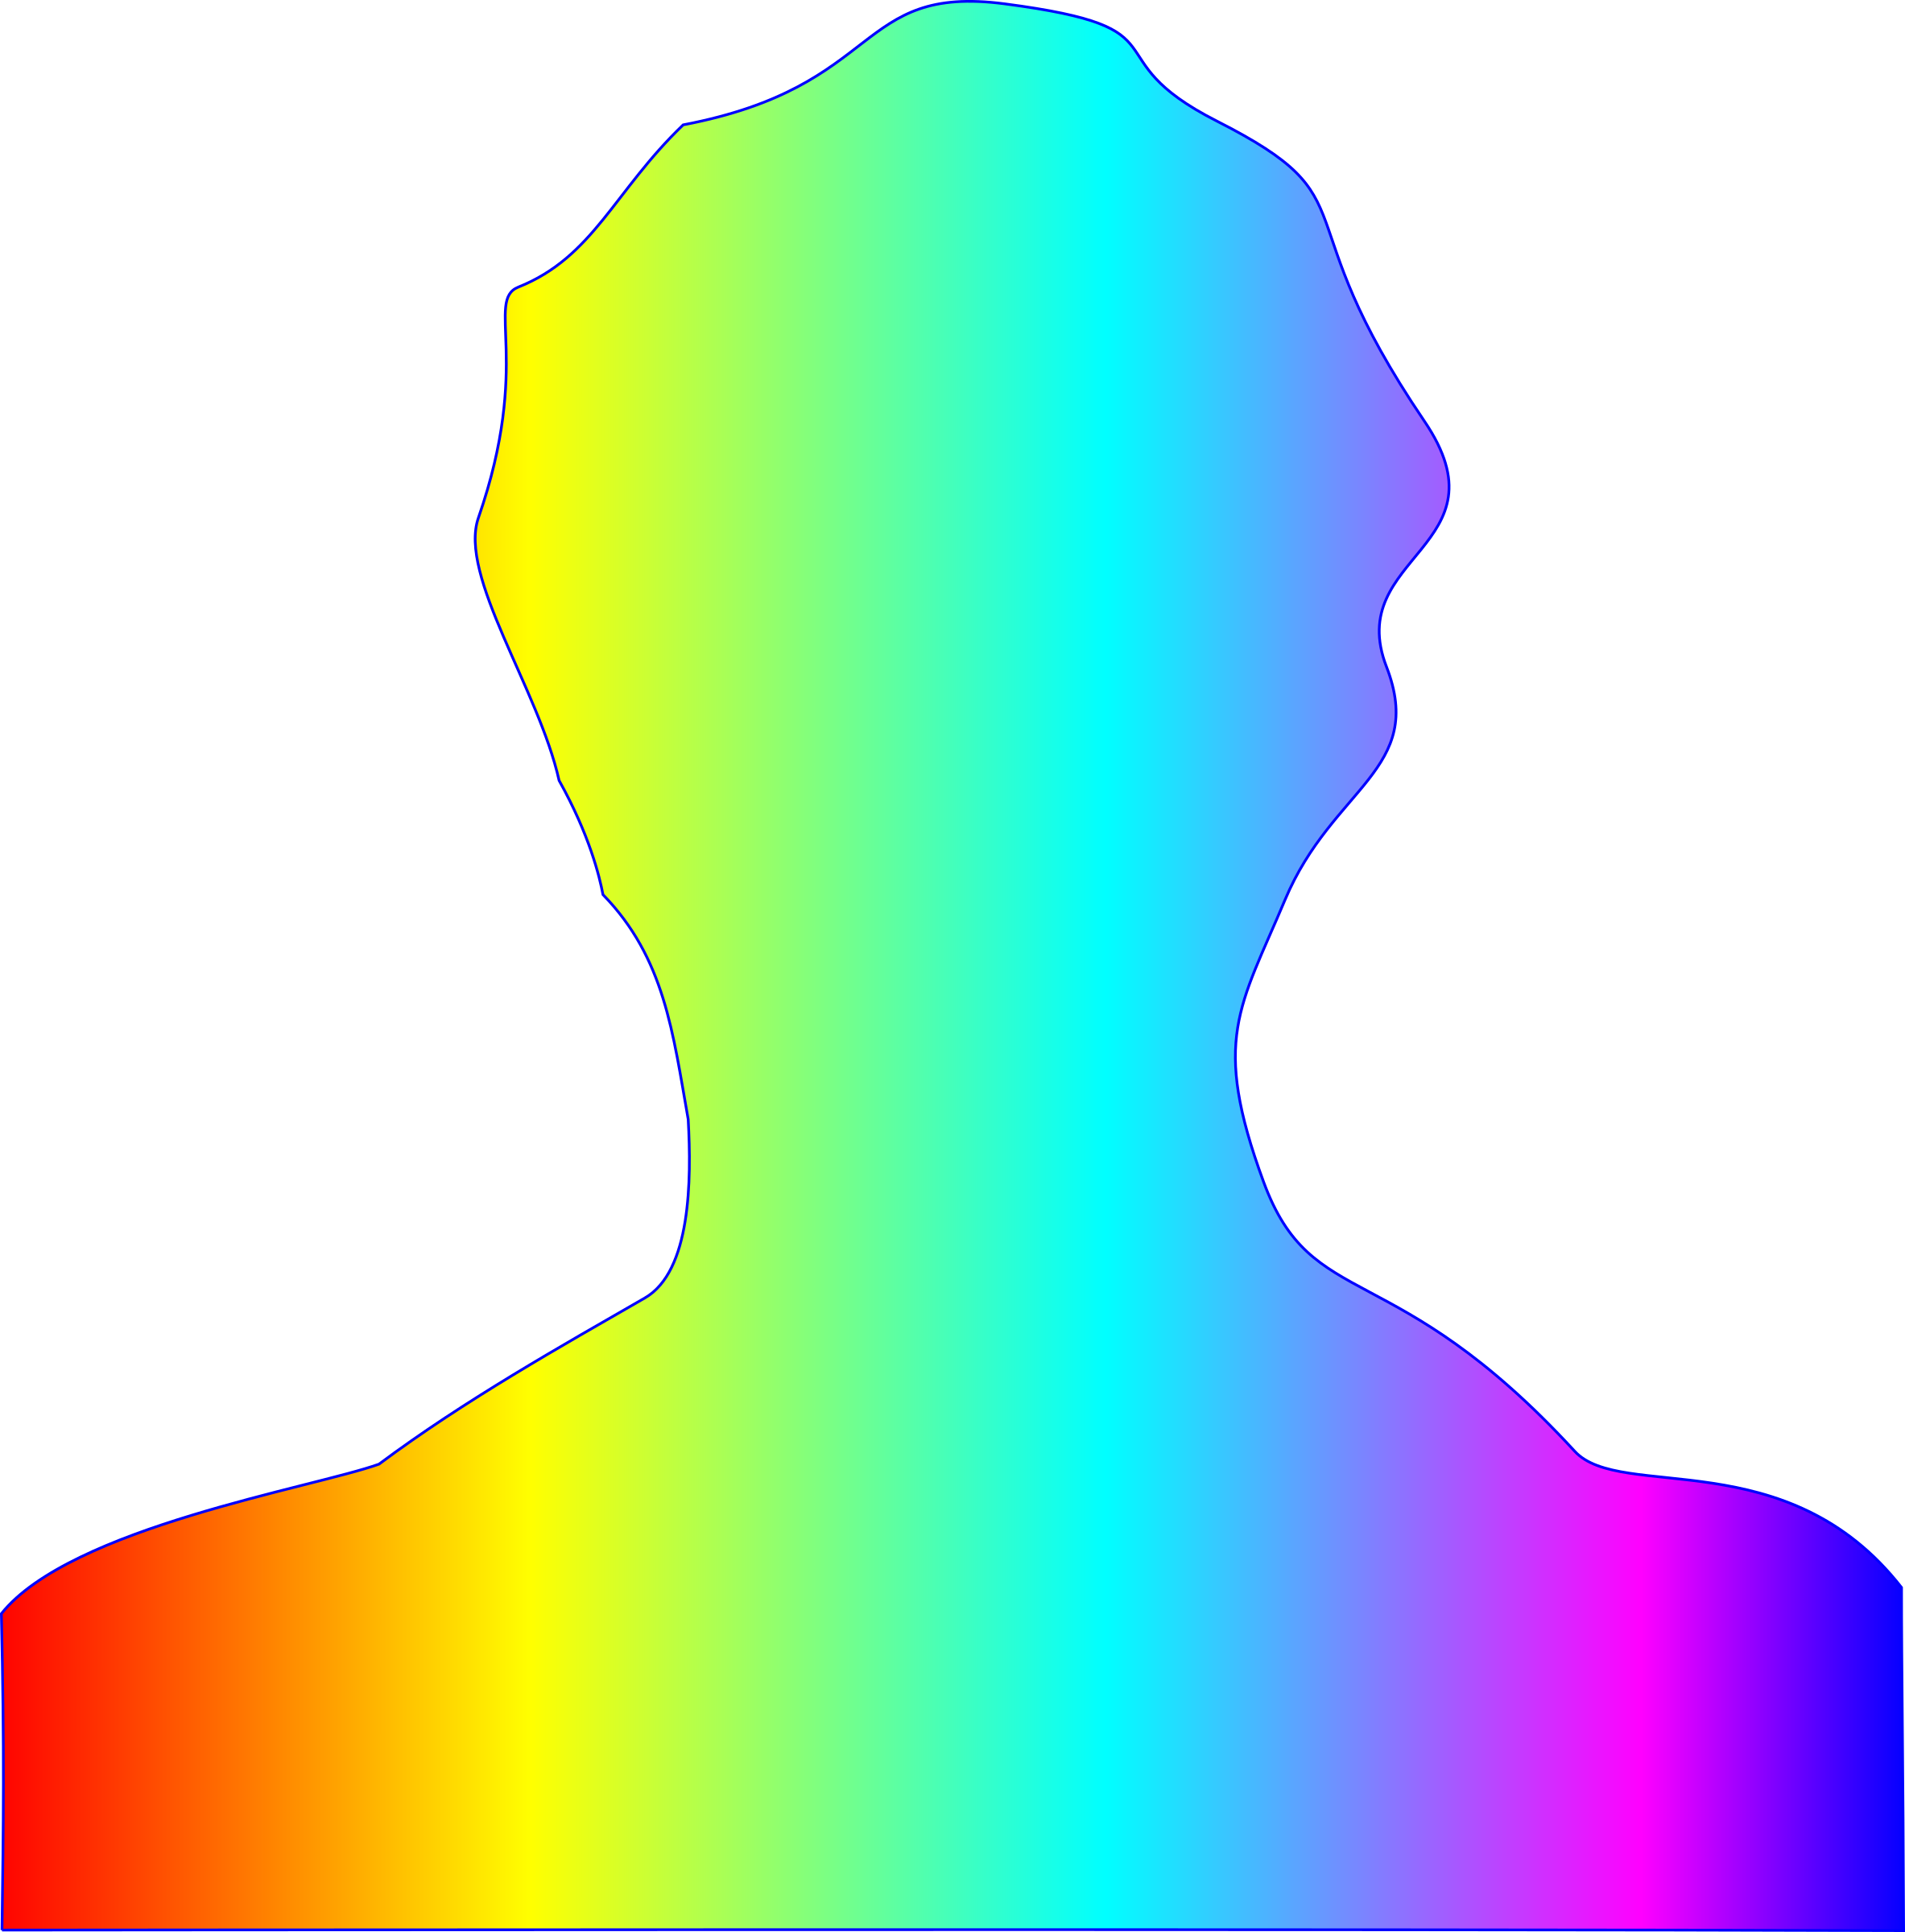 male silhouette with rainbow gradient by Manuela.